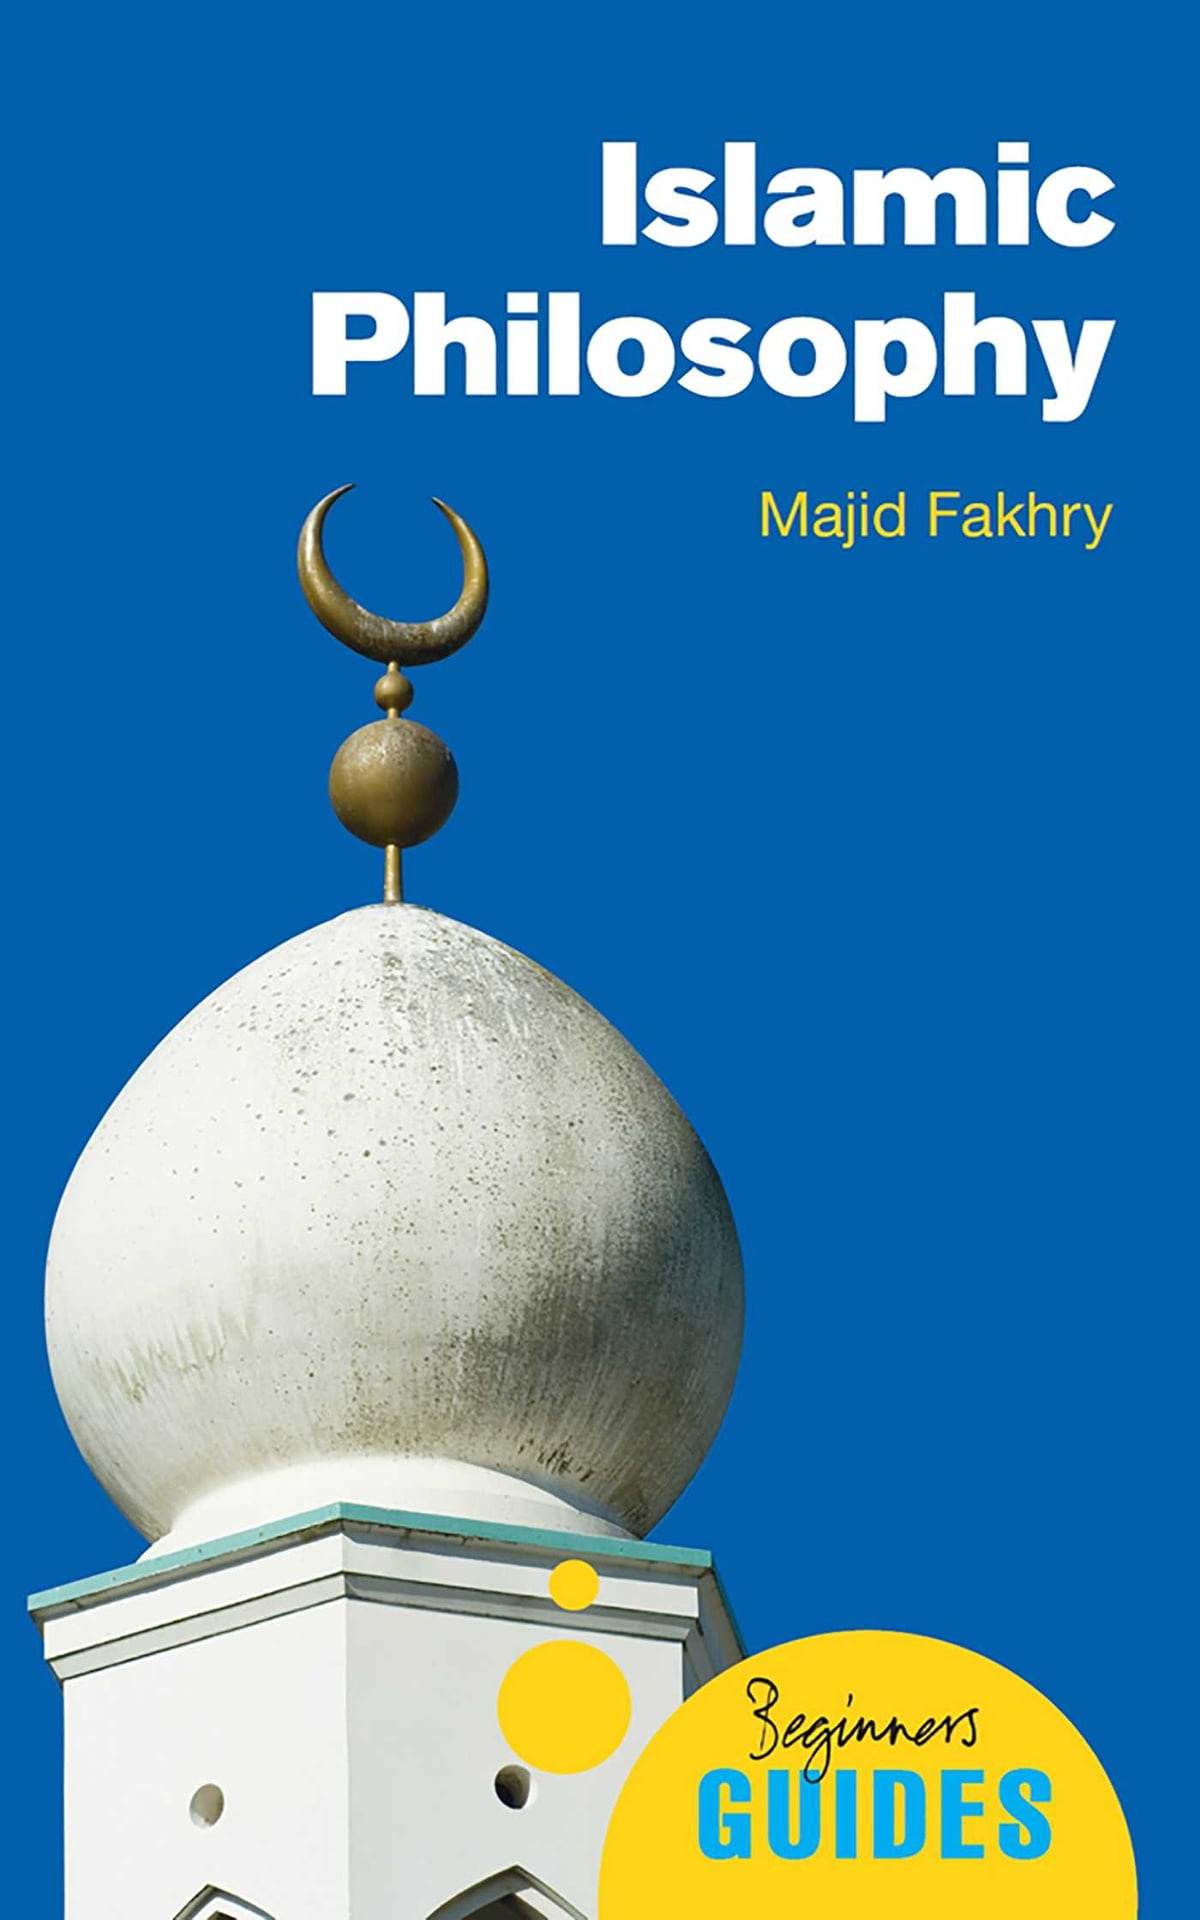 a history of islamic philosophy majid fakhry pdf free download